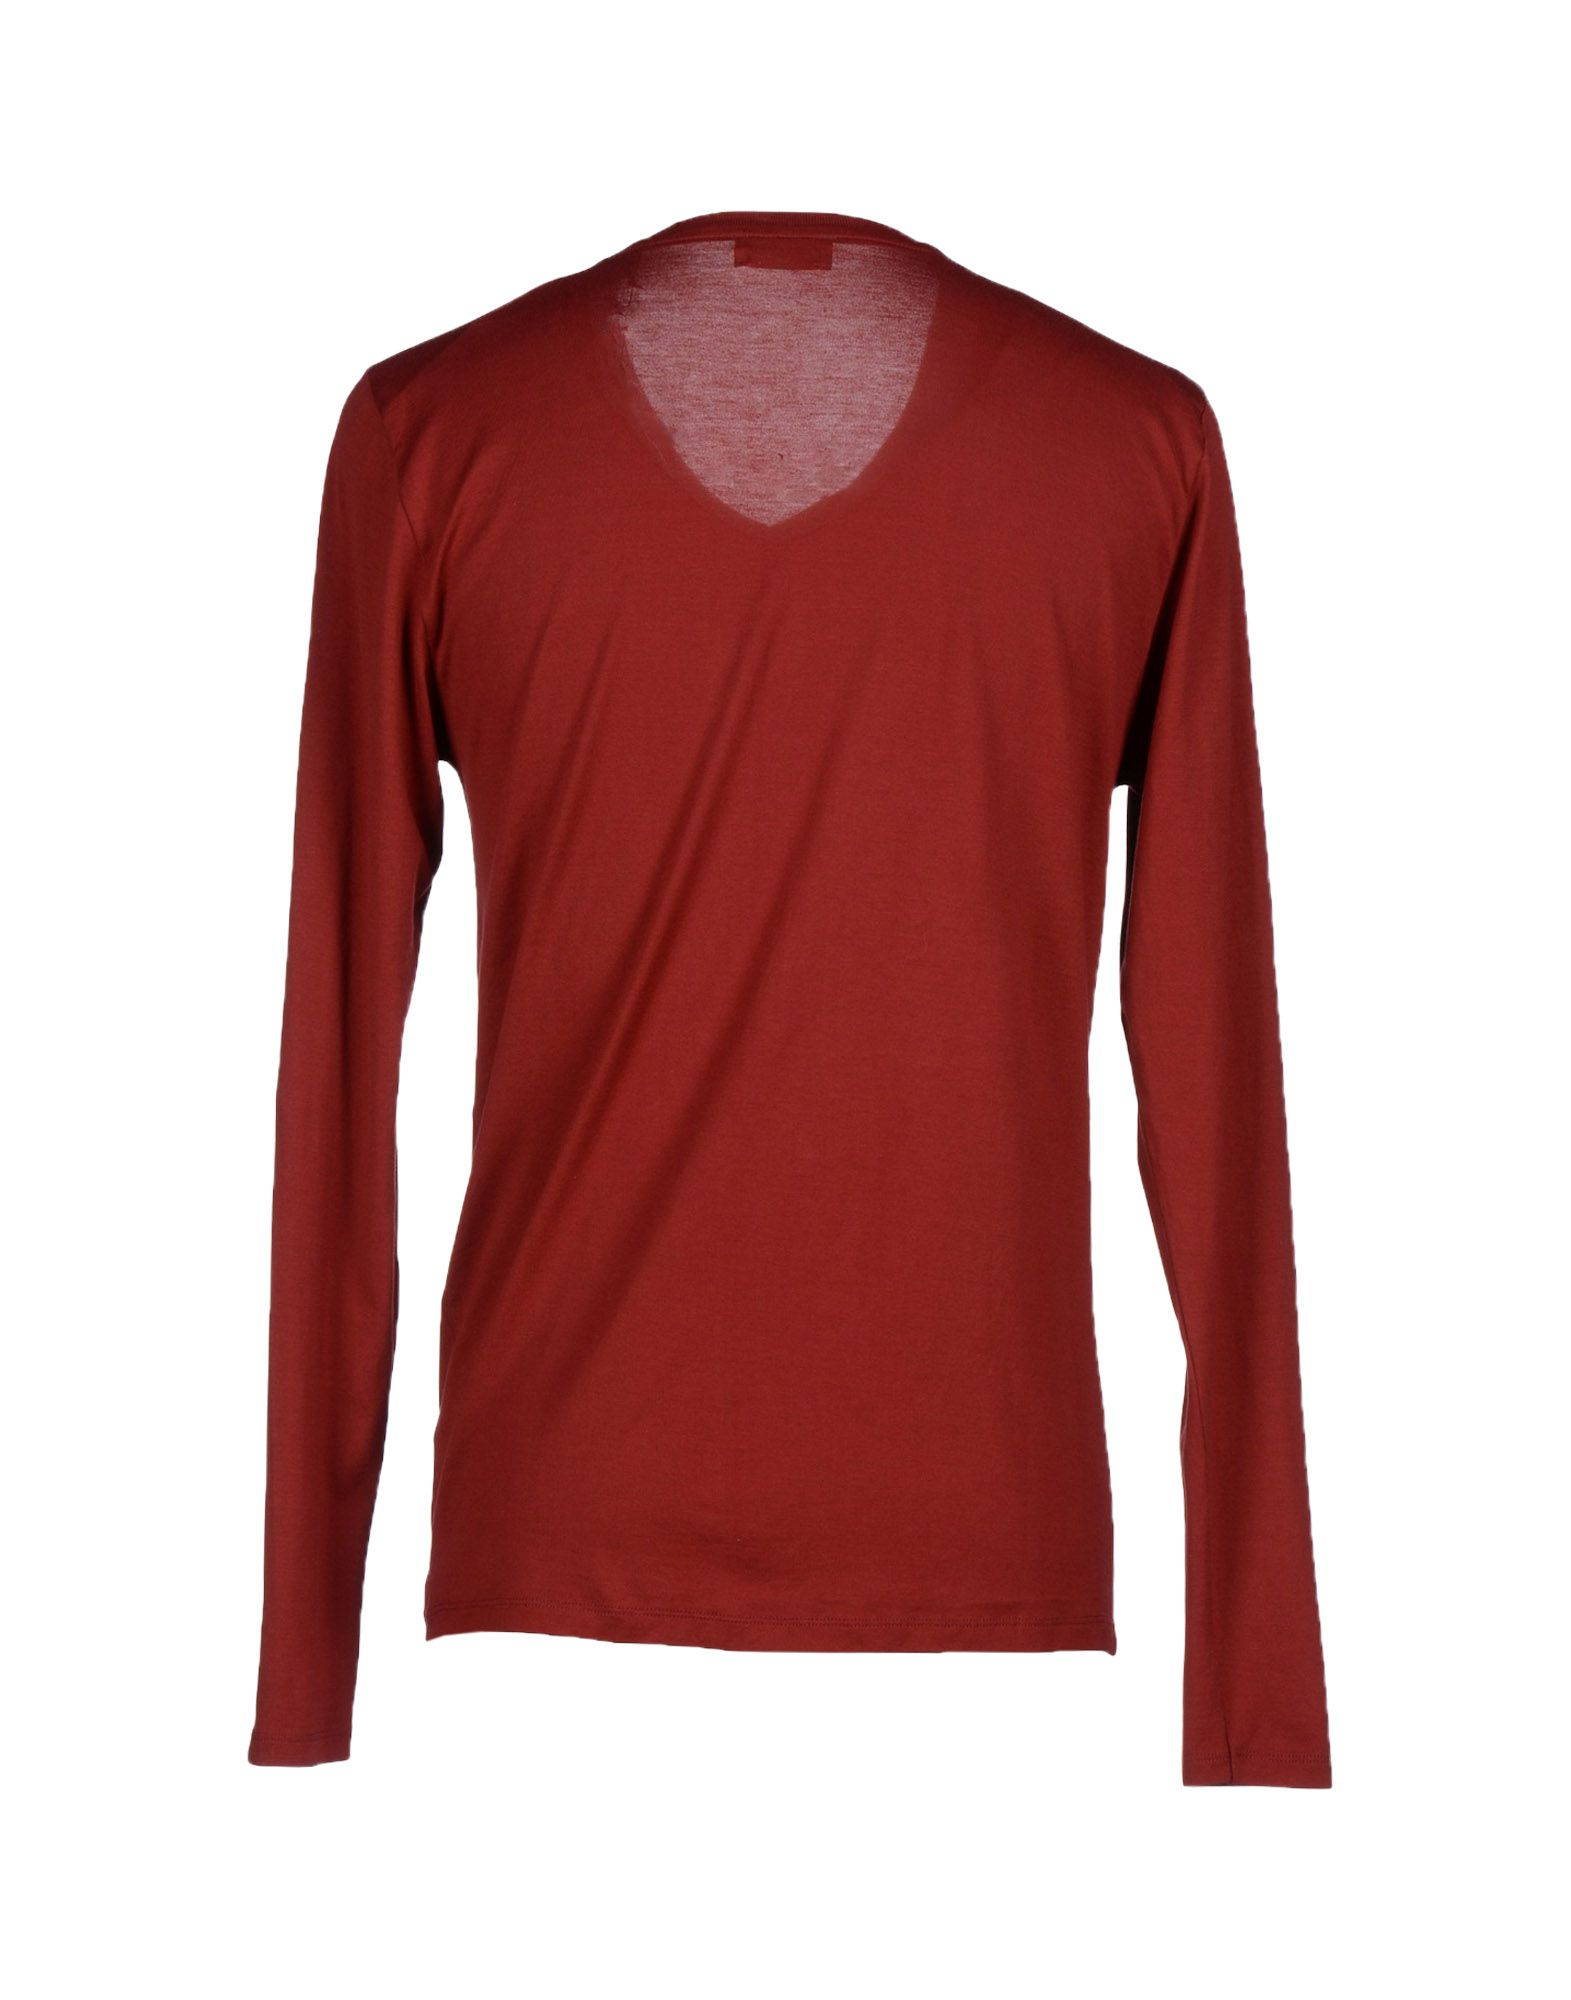 product red and red vintage t shirt Red and white for blue t-shirt related products quick shop gildan north catholic red gildan 50/50 t-shirt between $ 1500 to $ 1800.